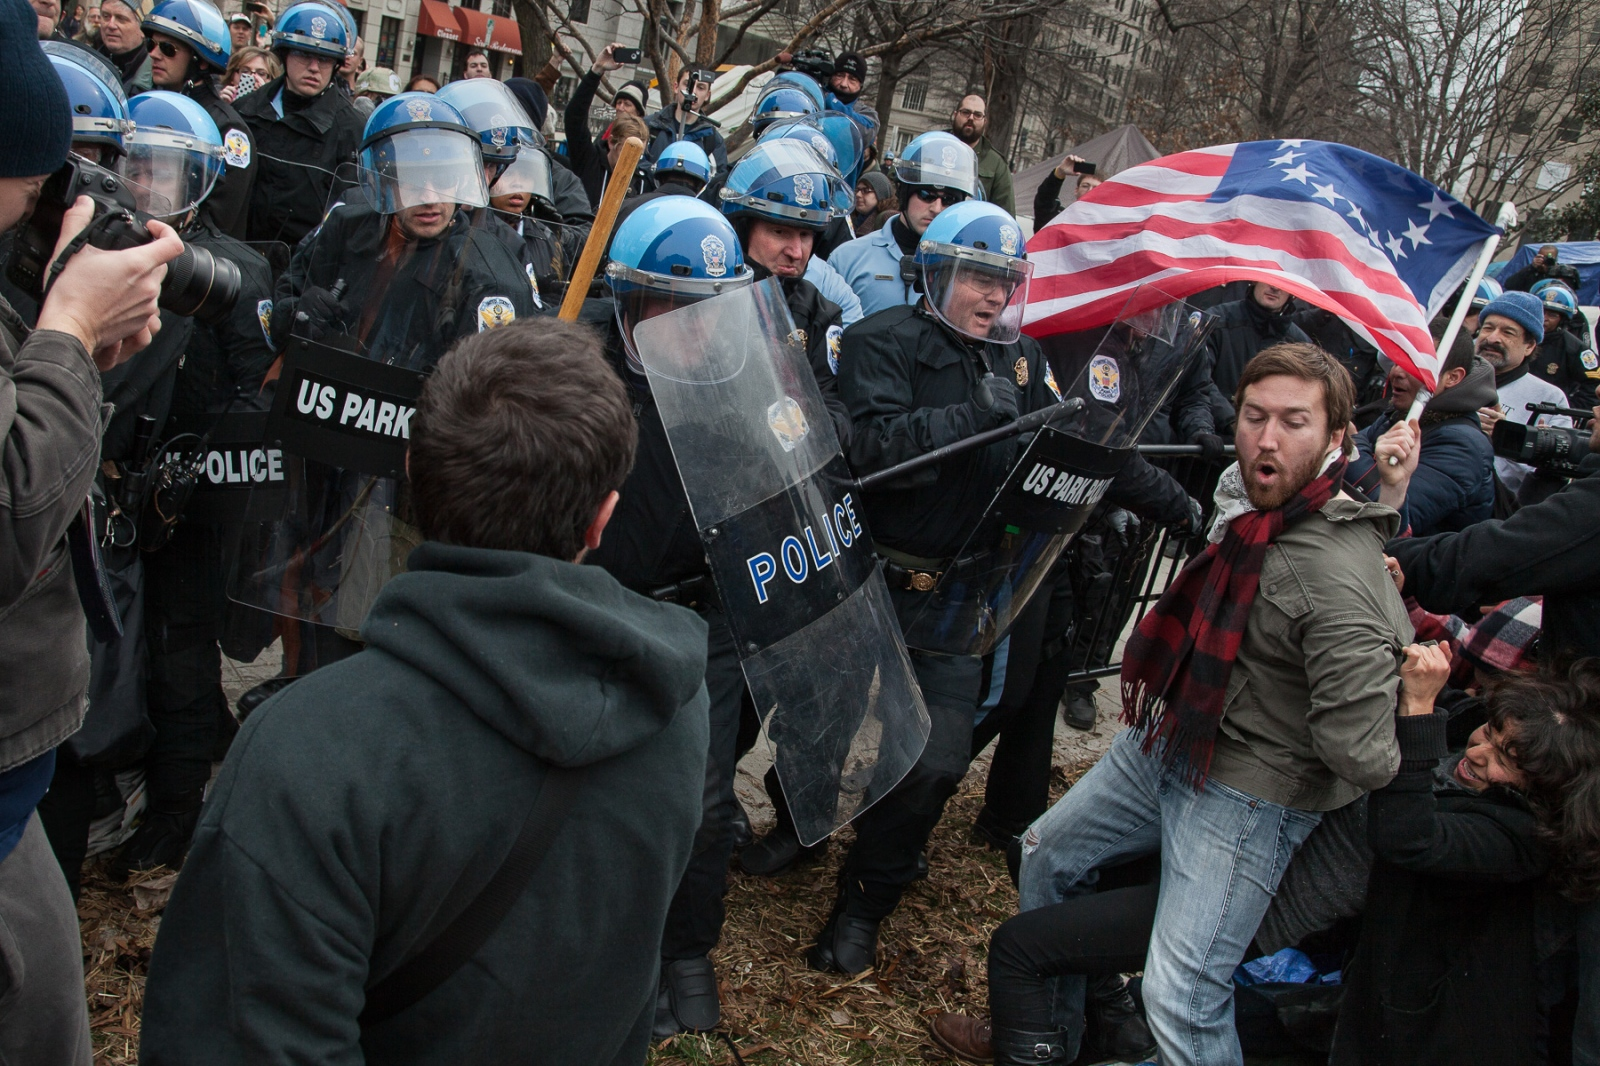 Occupy D.C. protestors try to resist as U.S. Park Police clear out areas of McPherson Square that will be inspected.